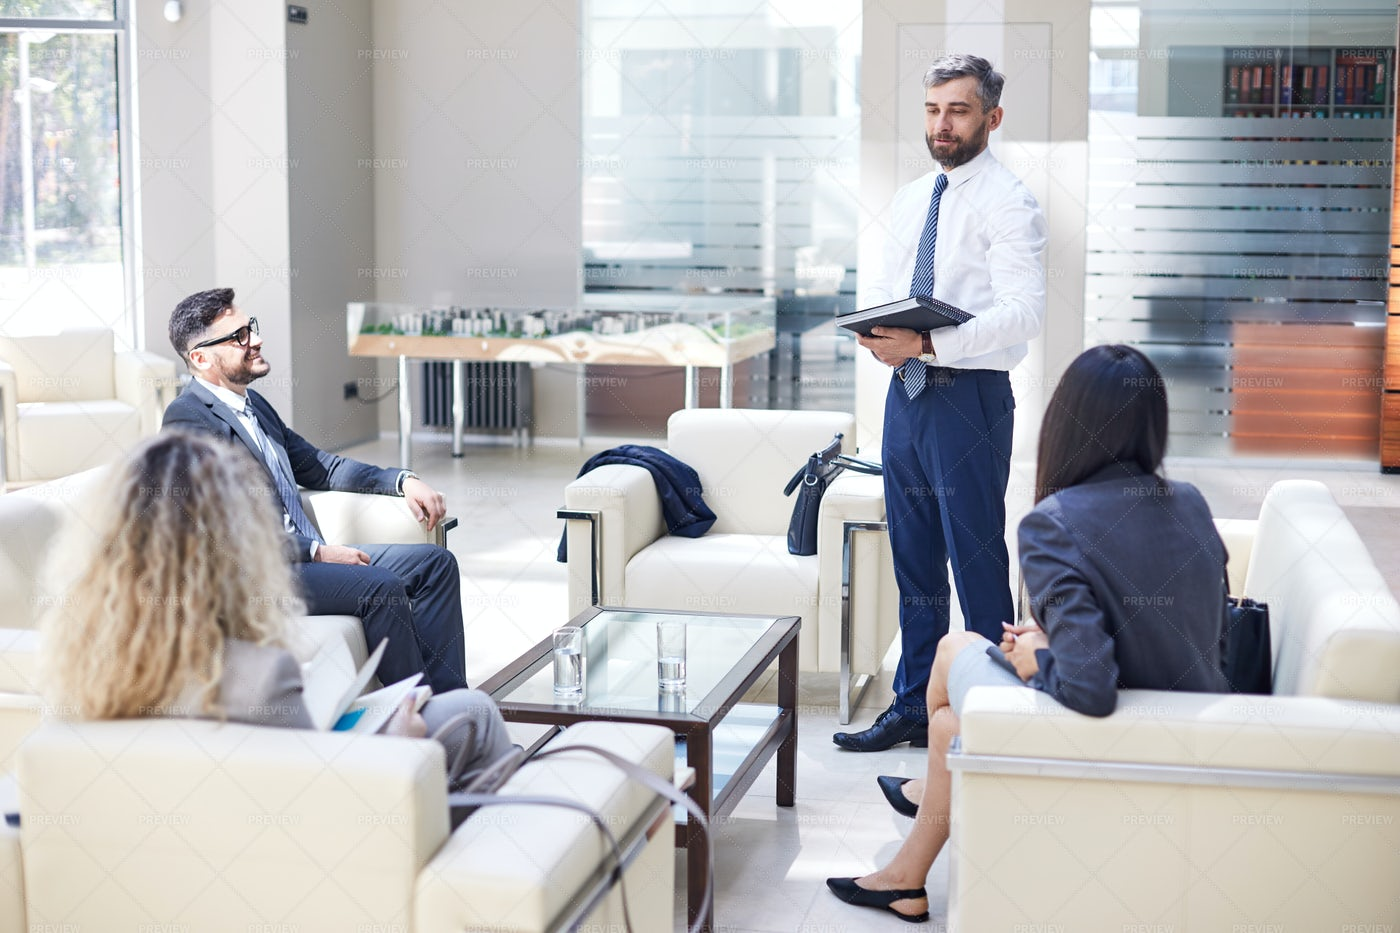 Productive Working Meeting Of...: Stock Photos